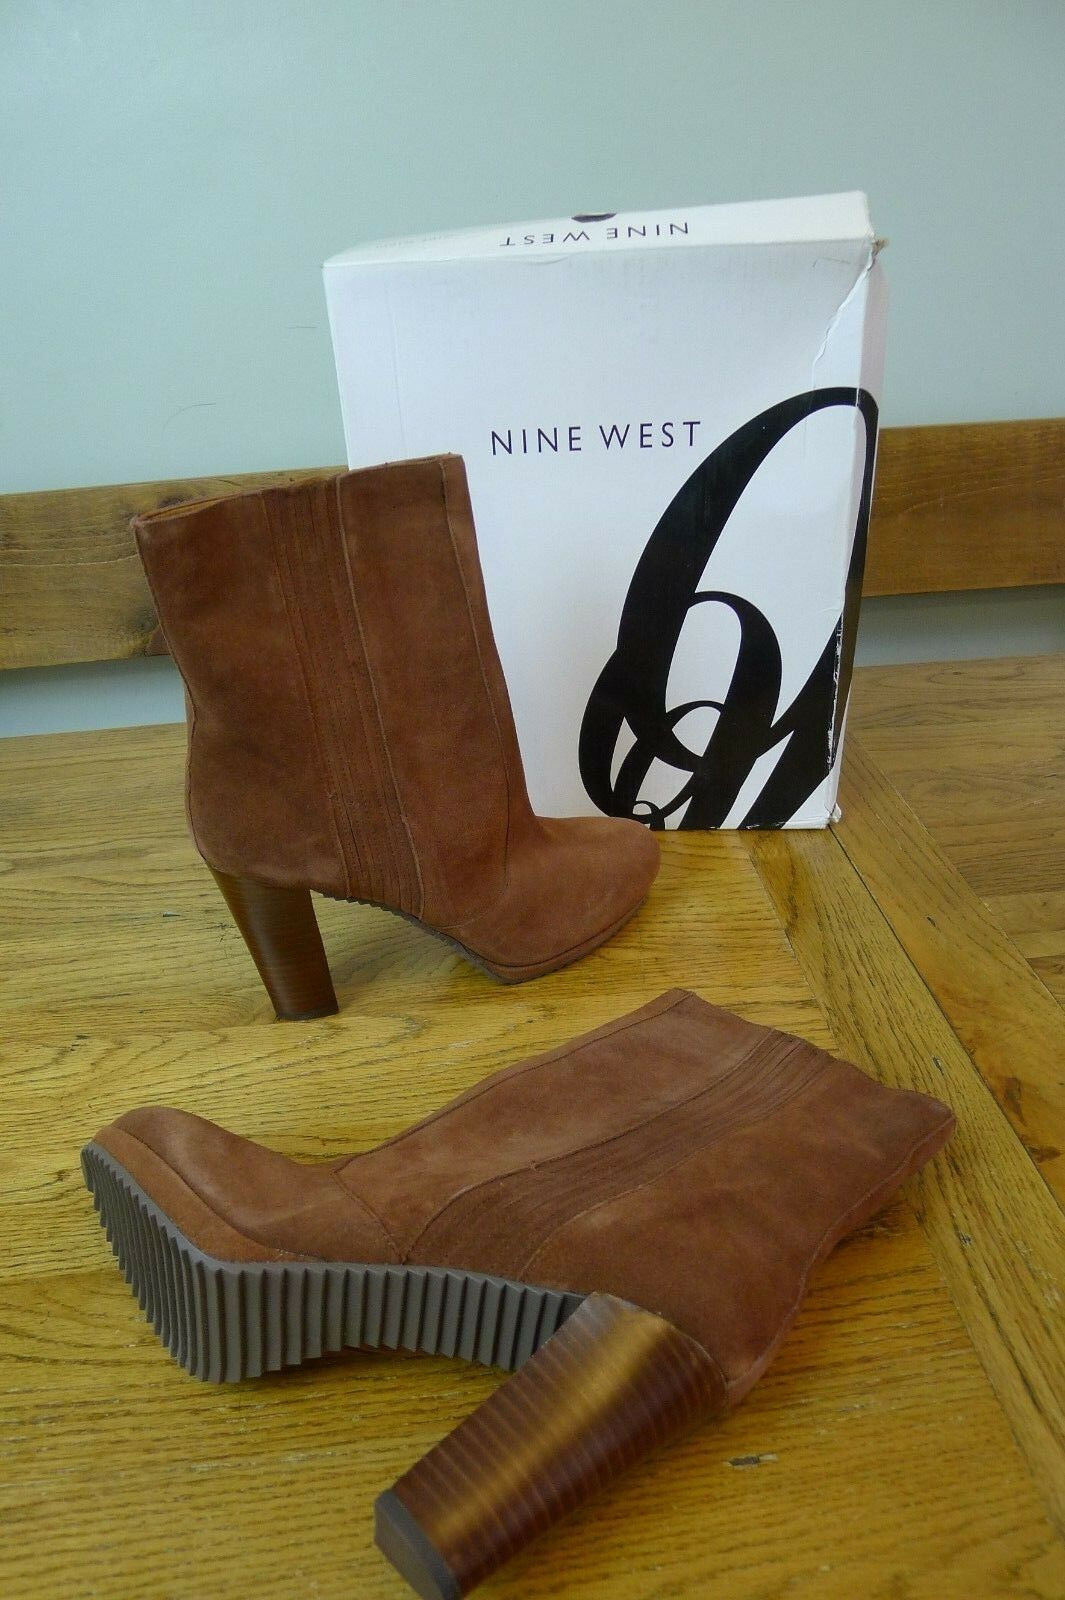 Nouveau NINE WEST en Daim Marron Bottines à talon haut pointure UK 8, US 10, EU 41.5